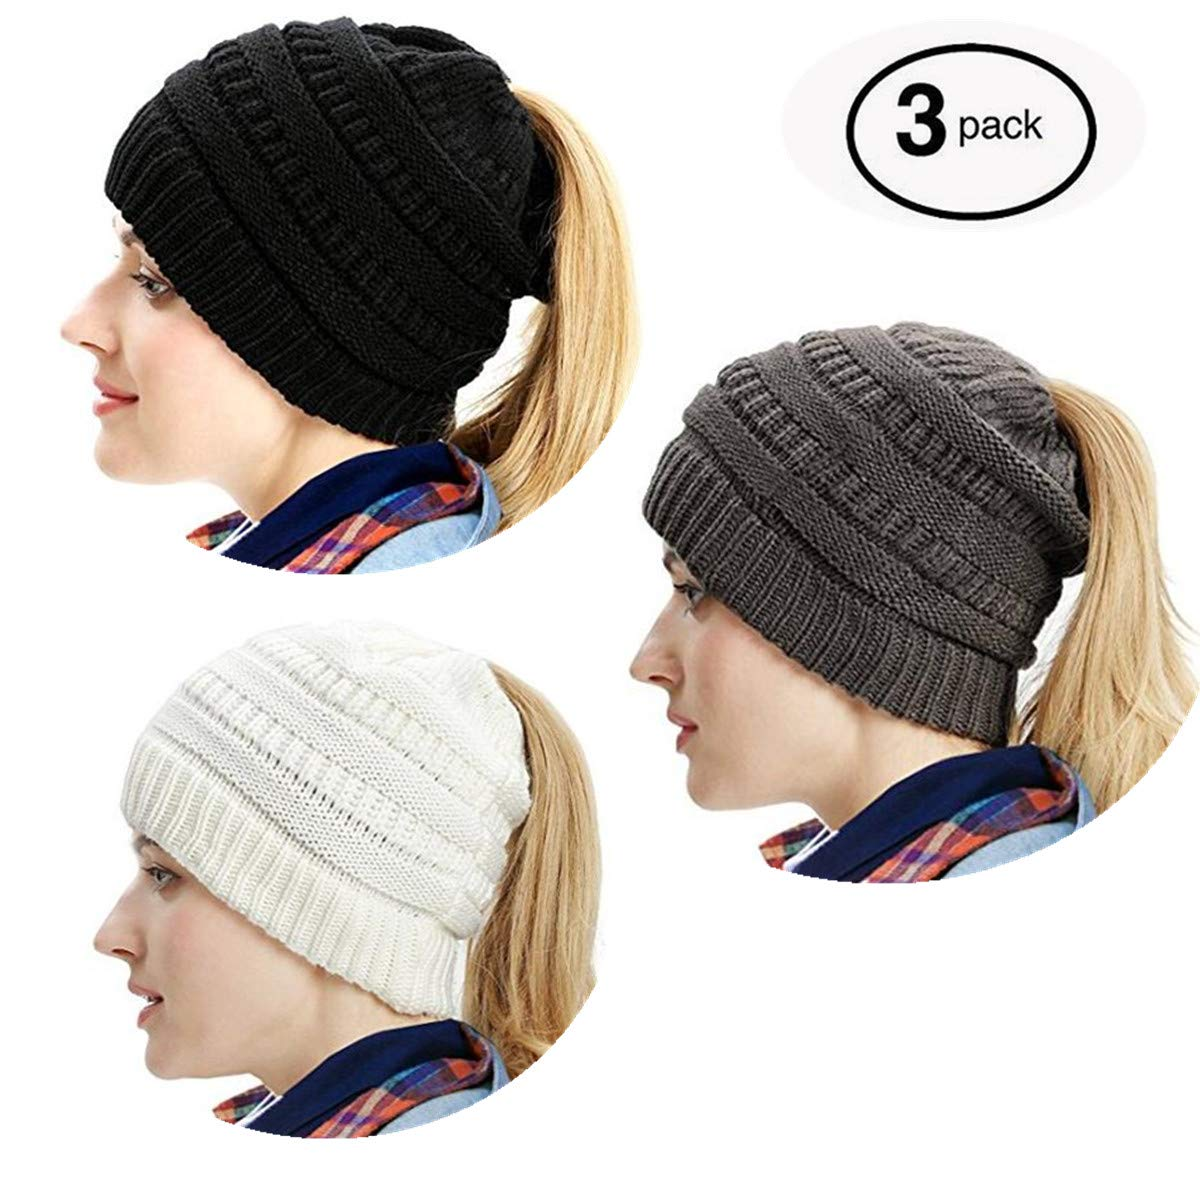 b0fdcea6f1c Gagget Women s Winter Knit Cup Beanie Tail Ponytail Winter Warm Stretch  Cable Messy High Bun Knit Hat (Black+White+Grey) at Amazon Women s Clothing  store